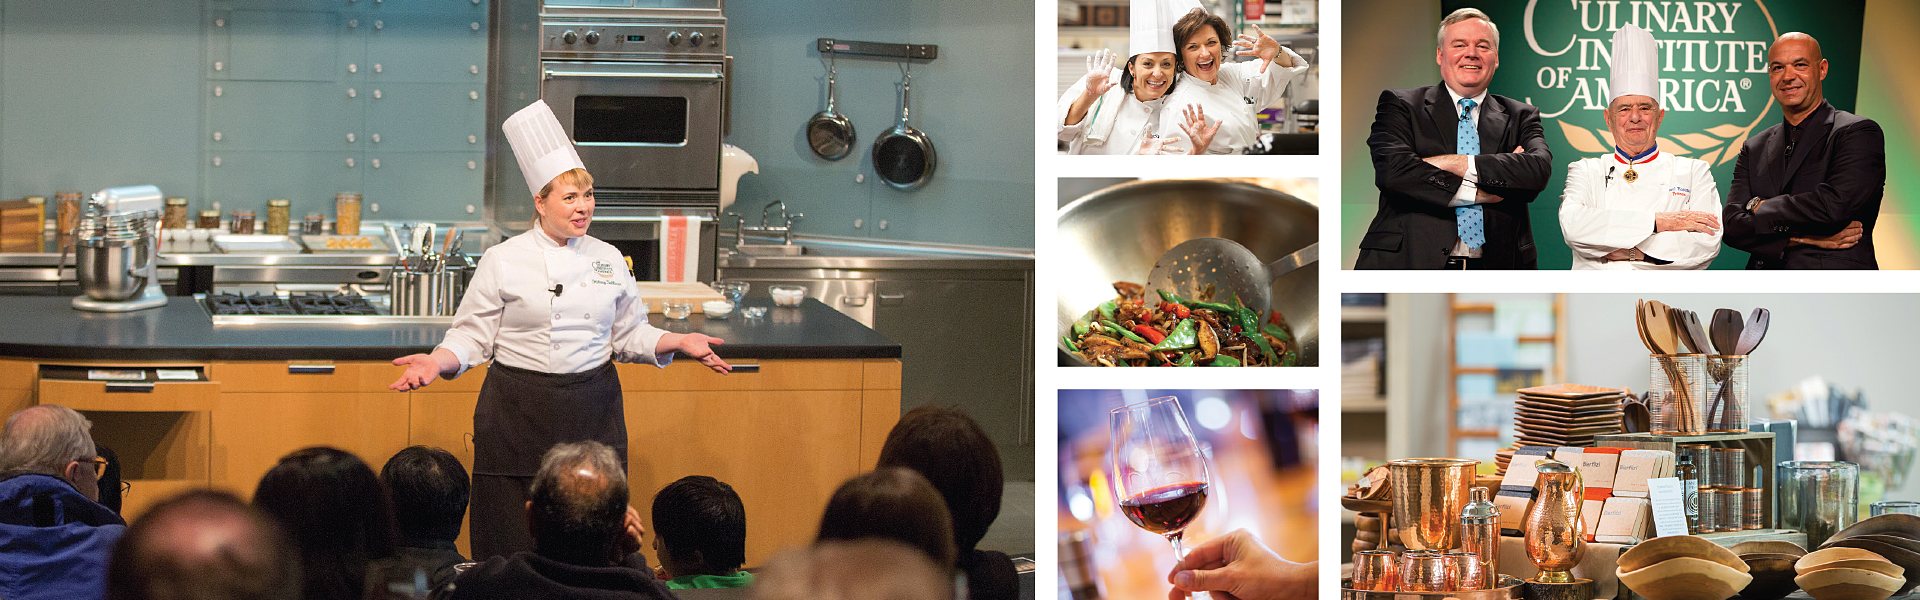 Photo collage of activities at The Culinary Institute of America.